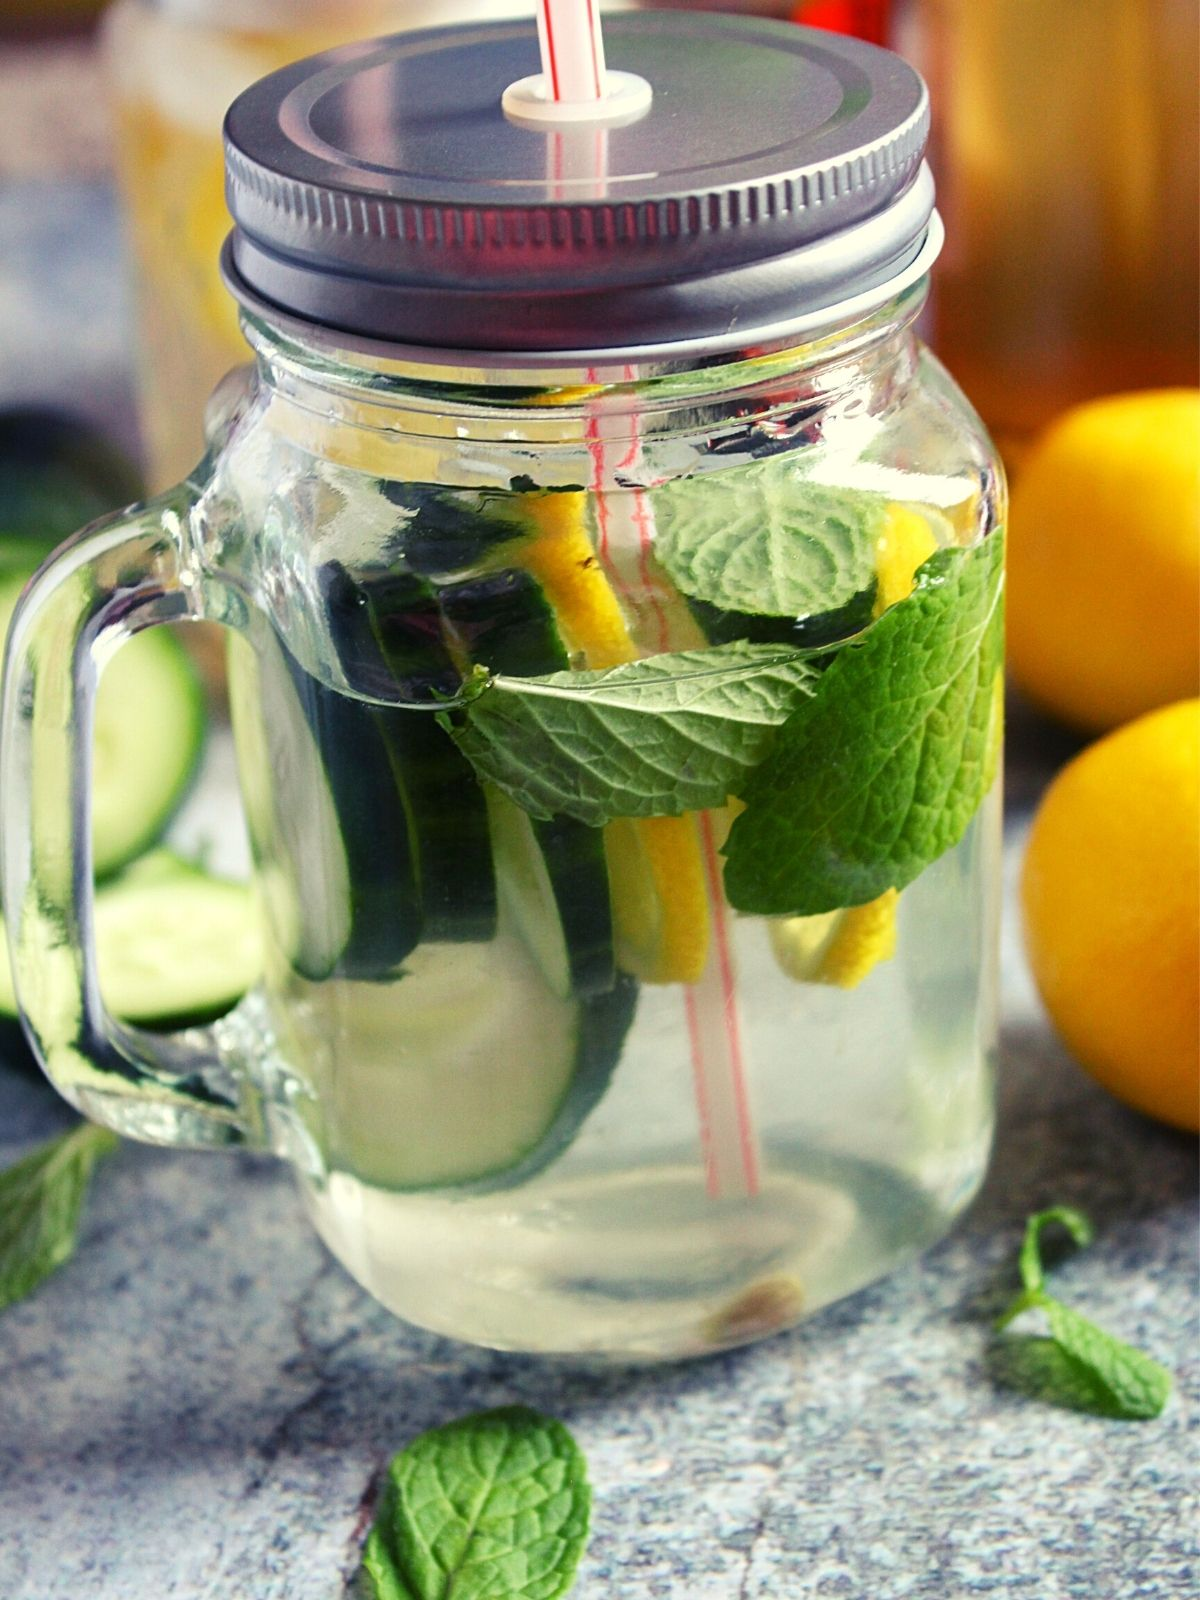 lemon cucumber infused water in a glass jar with a lid and straw